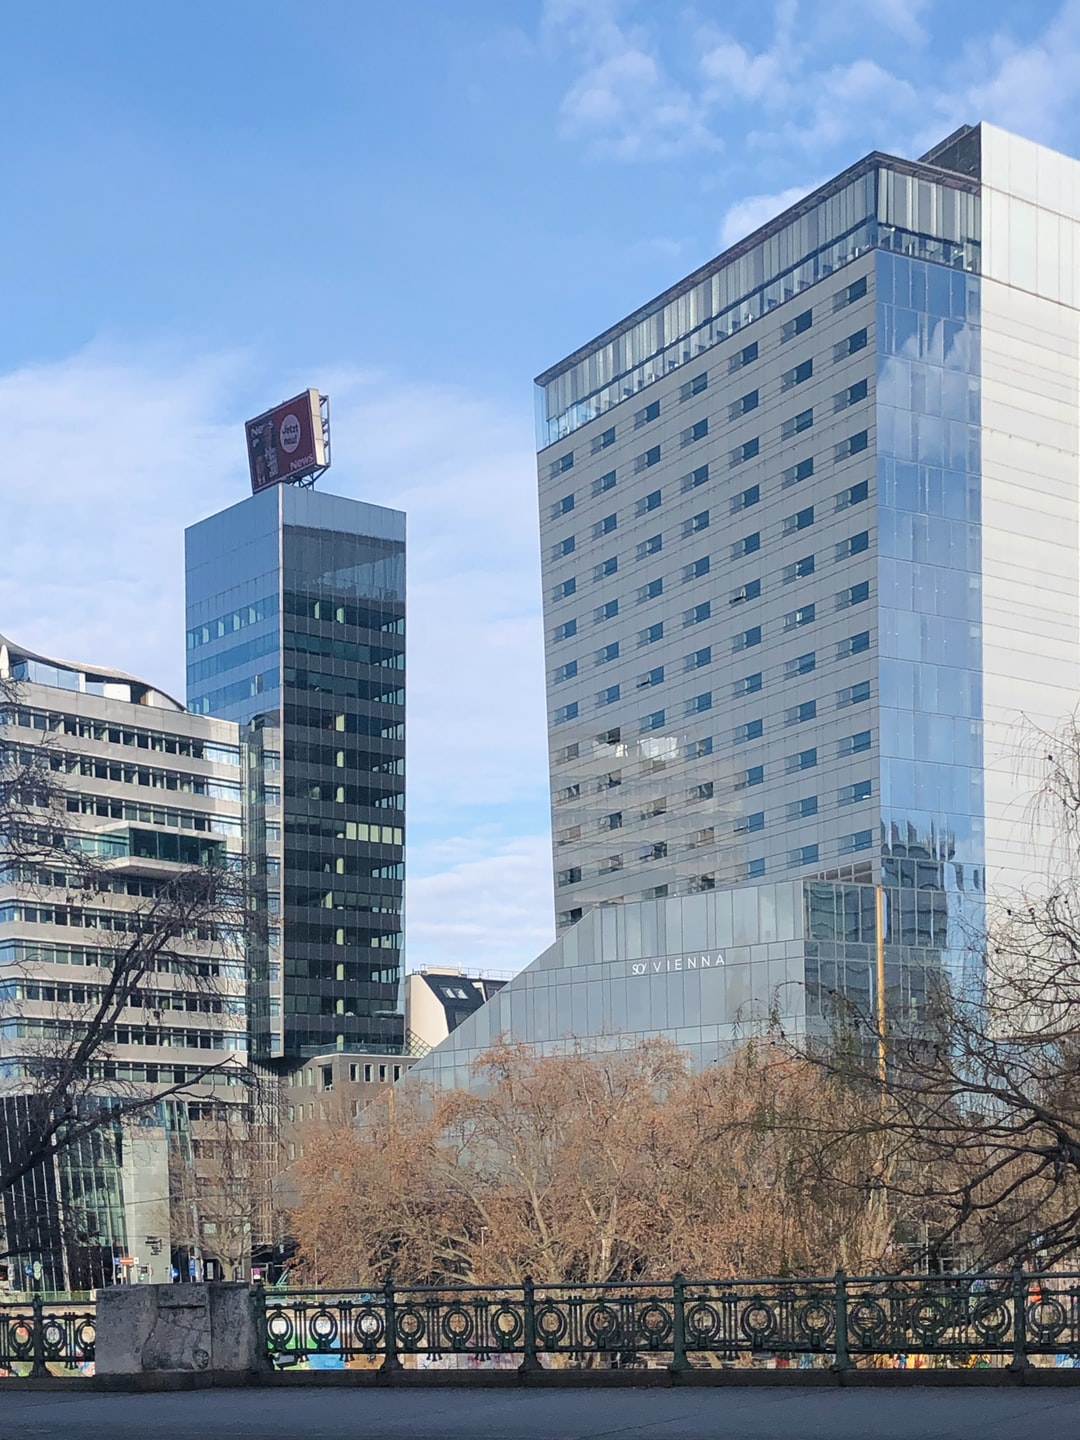 The Vienna Sofitel (SO Vienna) by Jean Nouvel and the Generali Media Tower by Hans Hollein  in the background. Both towers are not  perpendicular, hence the seeming distortion.